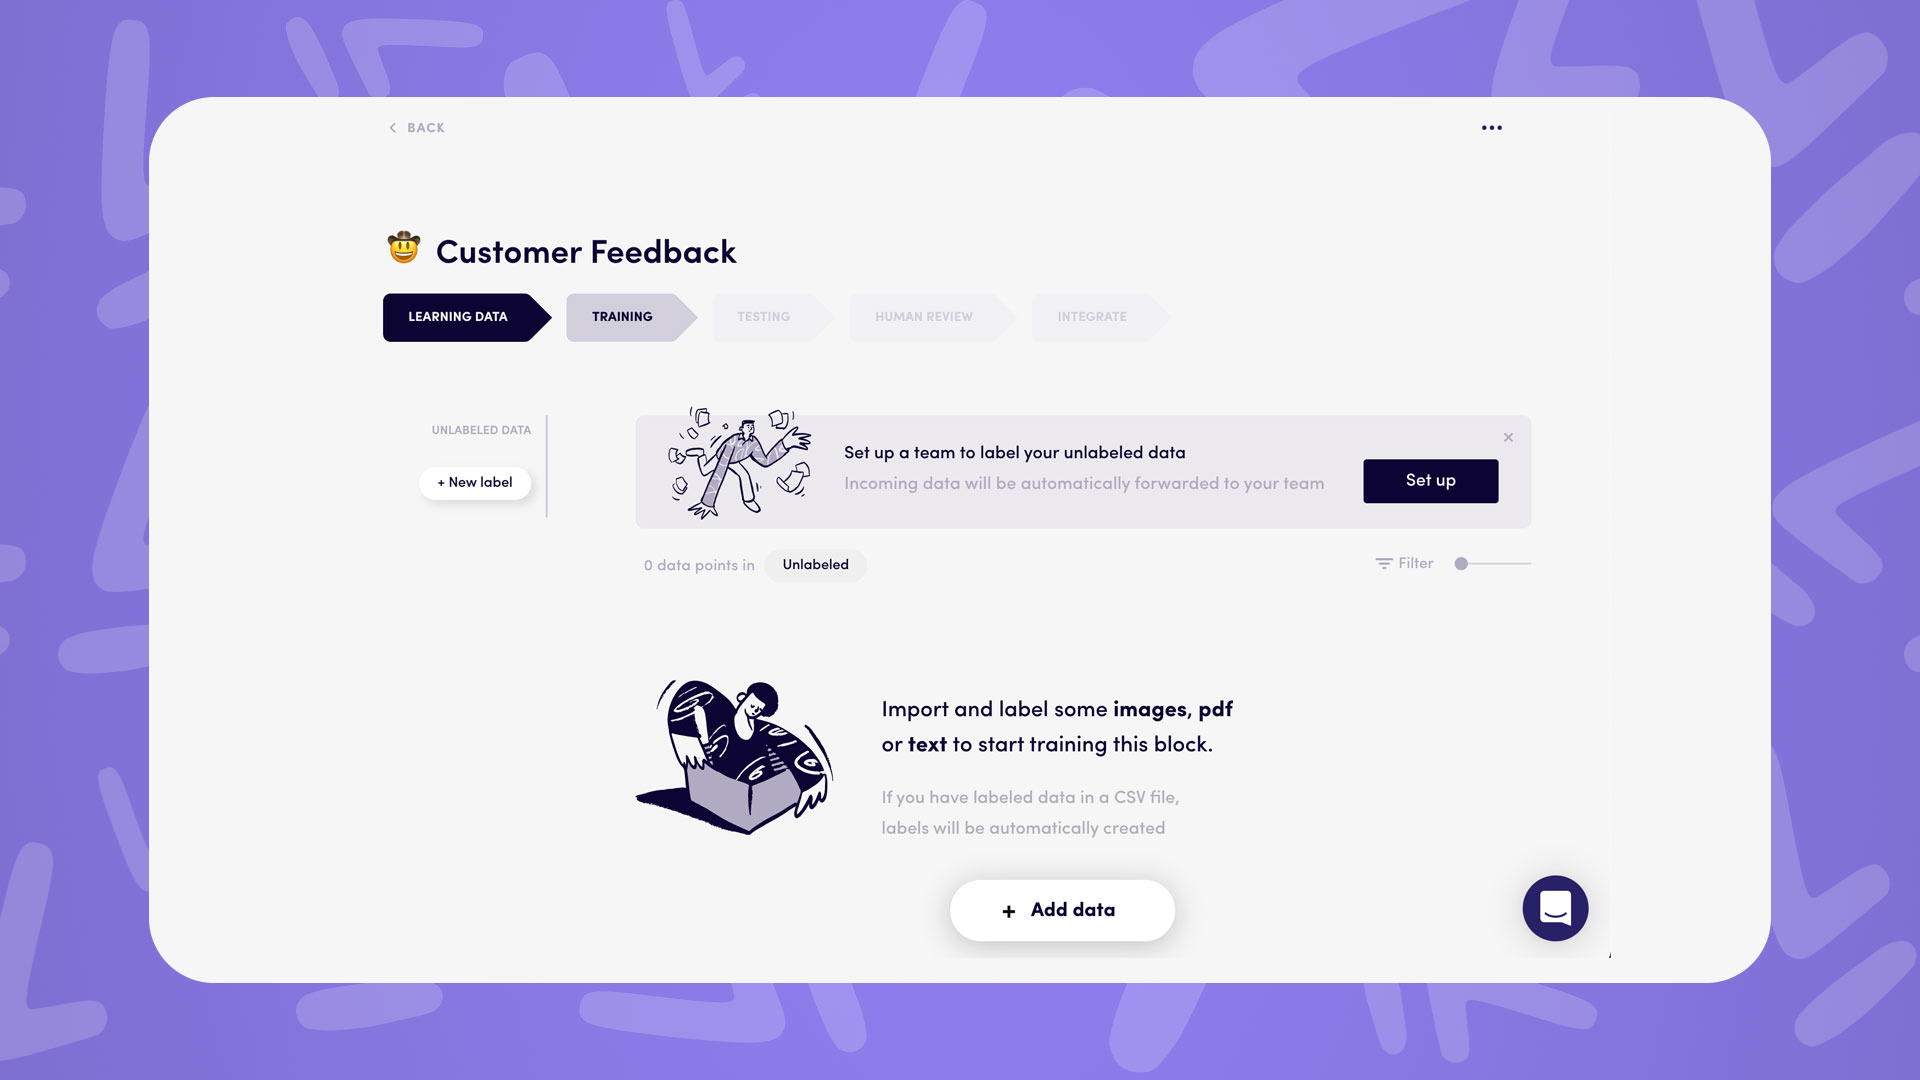 how to process customer feedback responses using AI